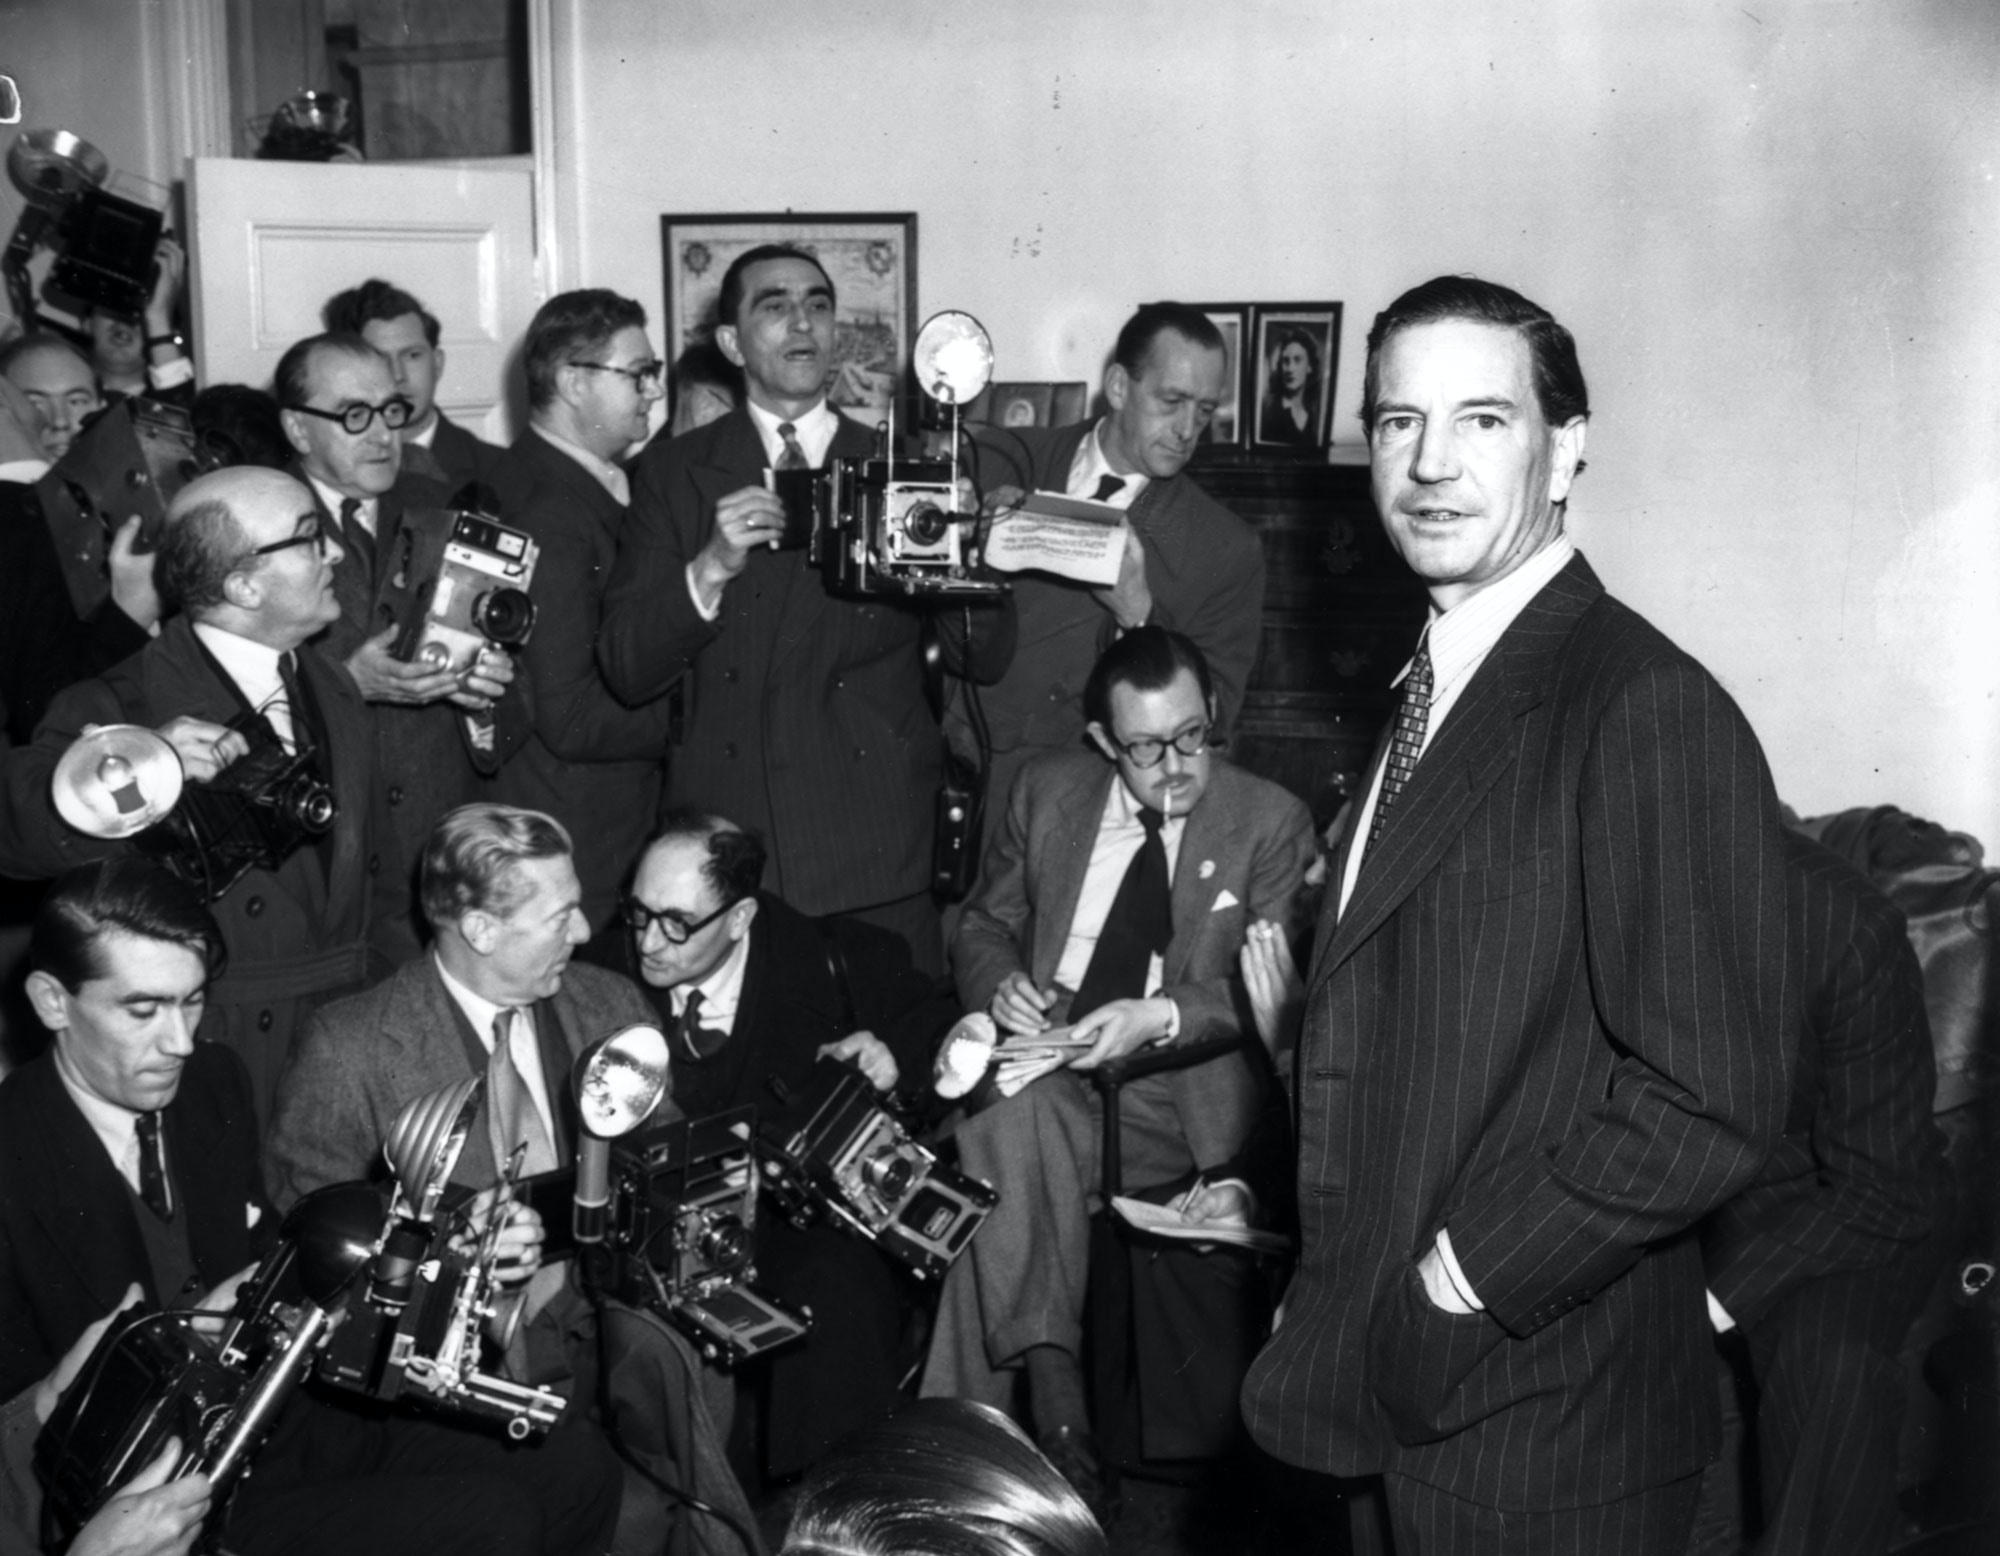 Harold 'Kim' Philby, former First Secretary of the British Embassy in Washington, at a press conference in response to his involvement with defected diplomats Burgess and McLean, at his brother's home in Drayton Gardens, London, November 8th 1955. (Photo by J. Wilds/Keystone/Getty Images)